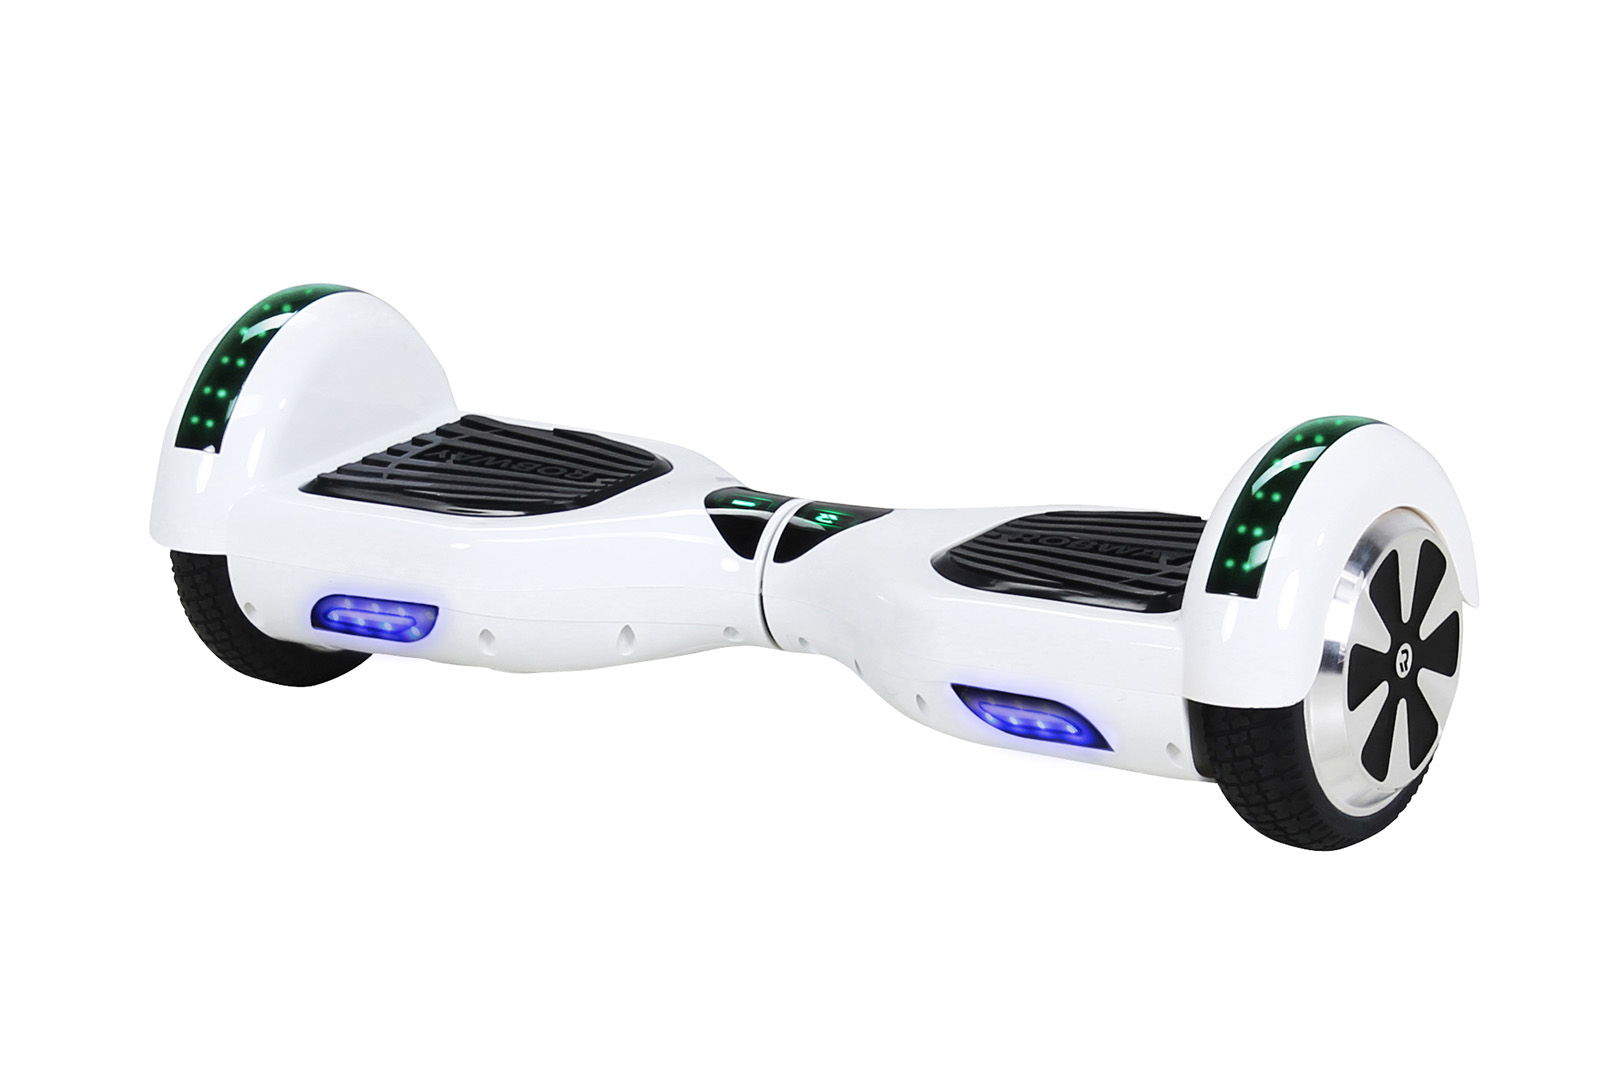 robway w1 der testsieger self balancing scooter hoverboards von robway jetzt kaufen. Black Bedroom Furniture Sets. Home Design Ideas